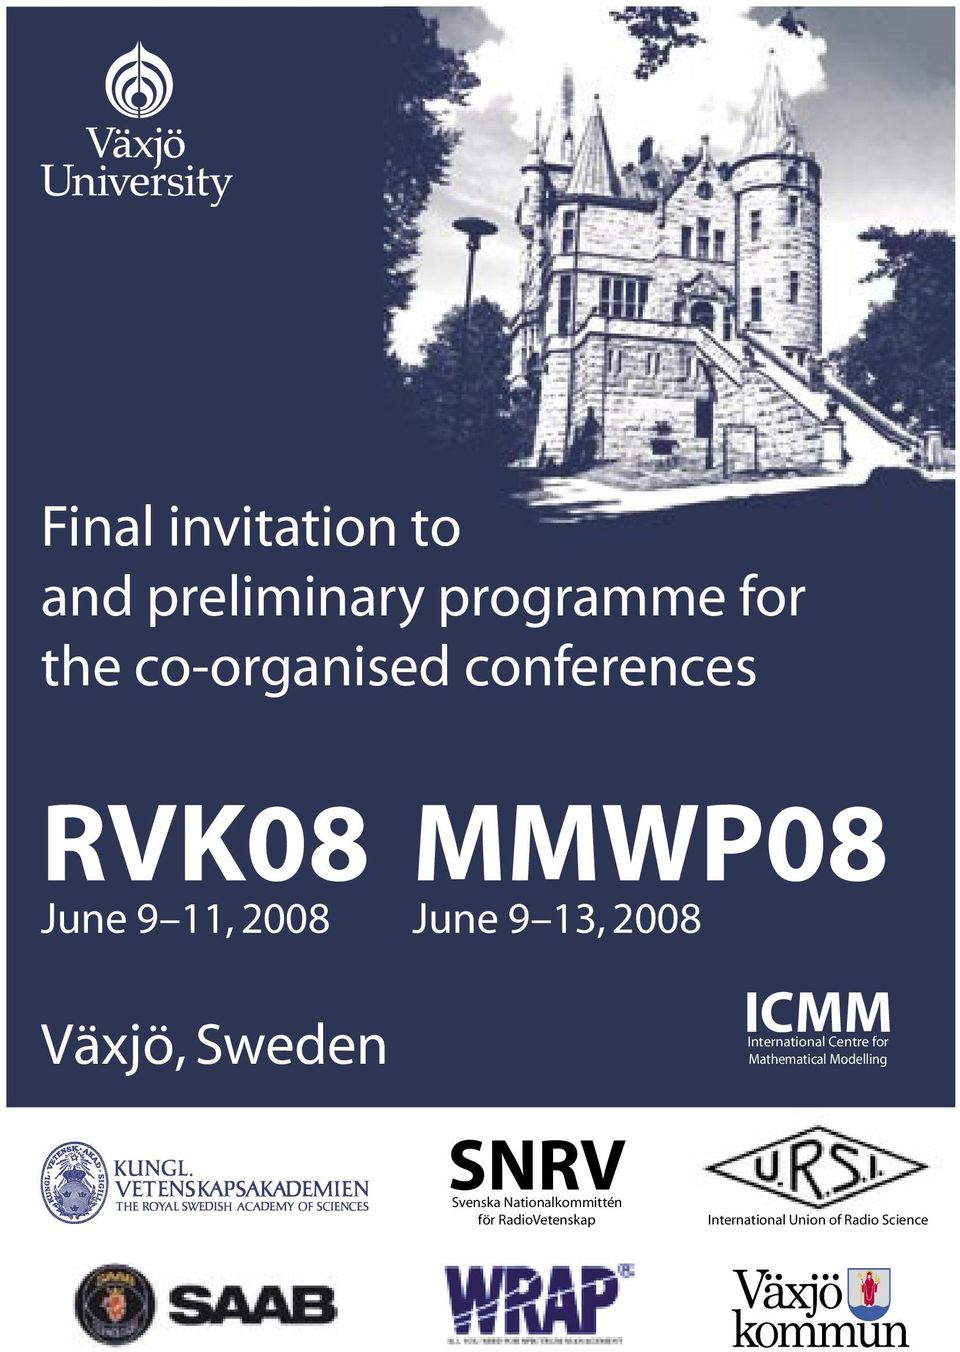 Sweden ICMM International Centre for Mathematical Modelling SNRV